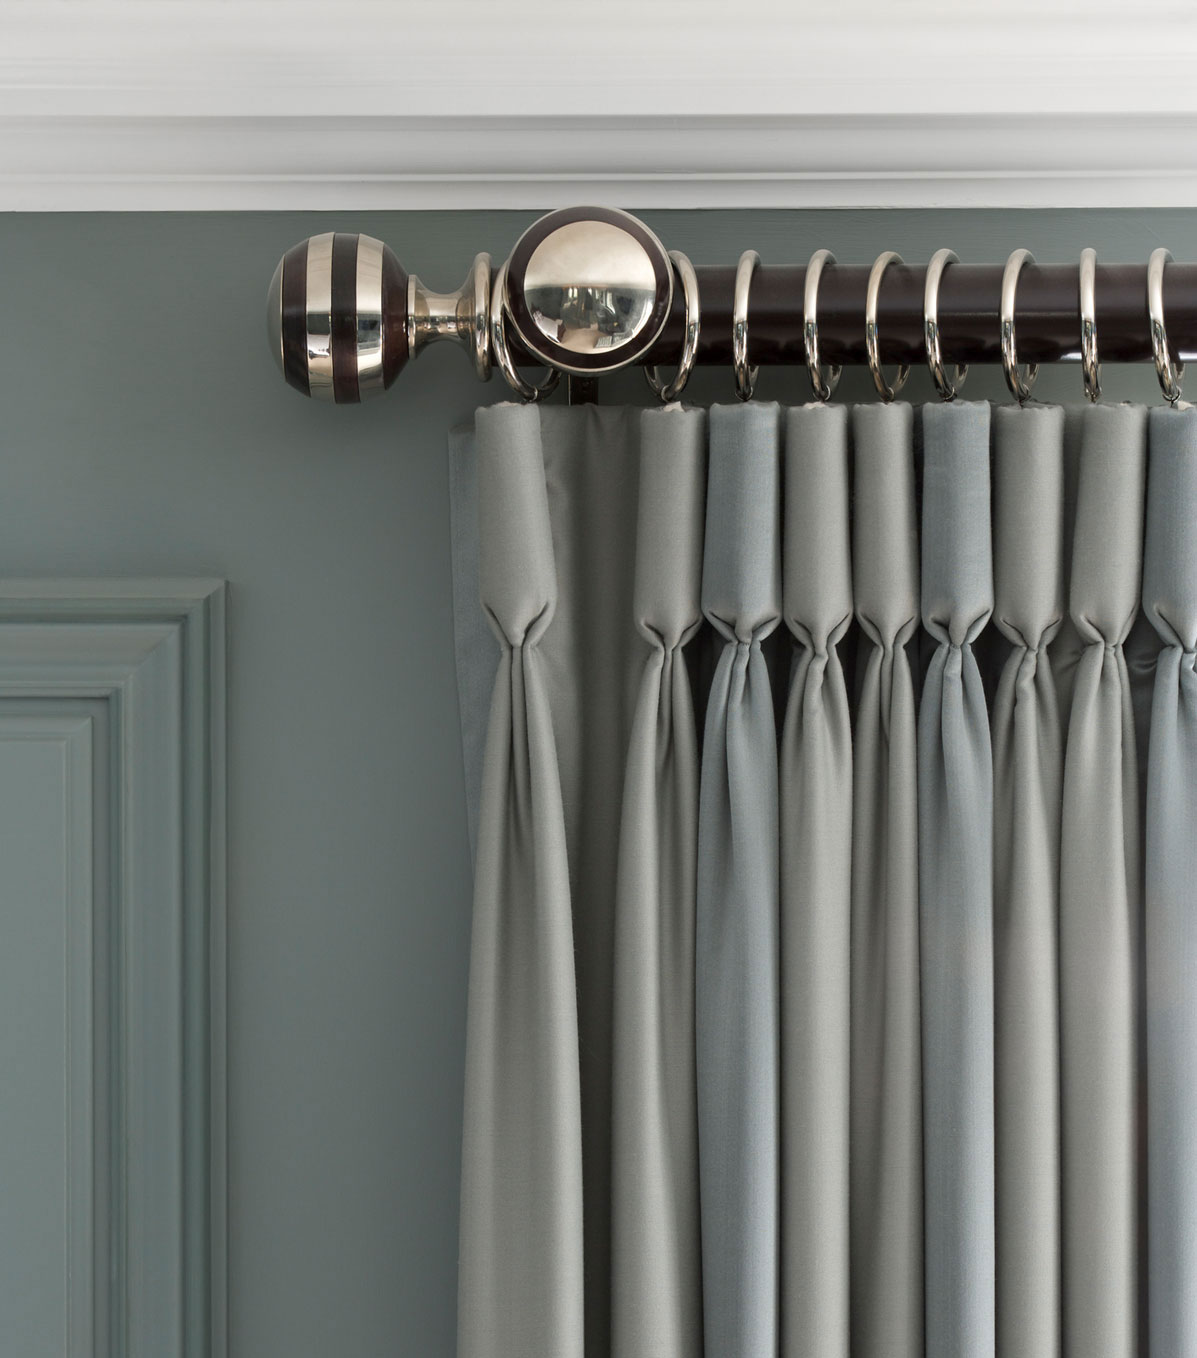 Curtains and Window Treatments Guide - Types of curtain rods